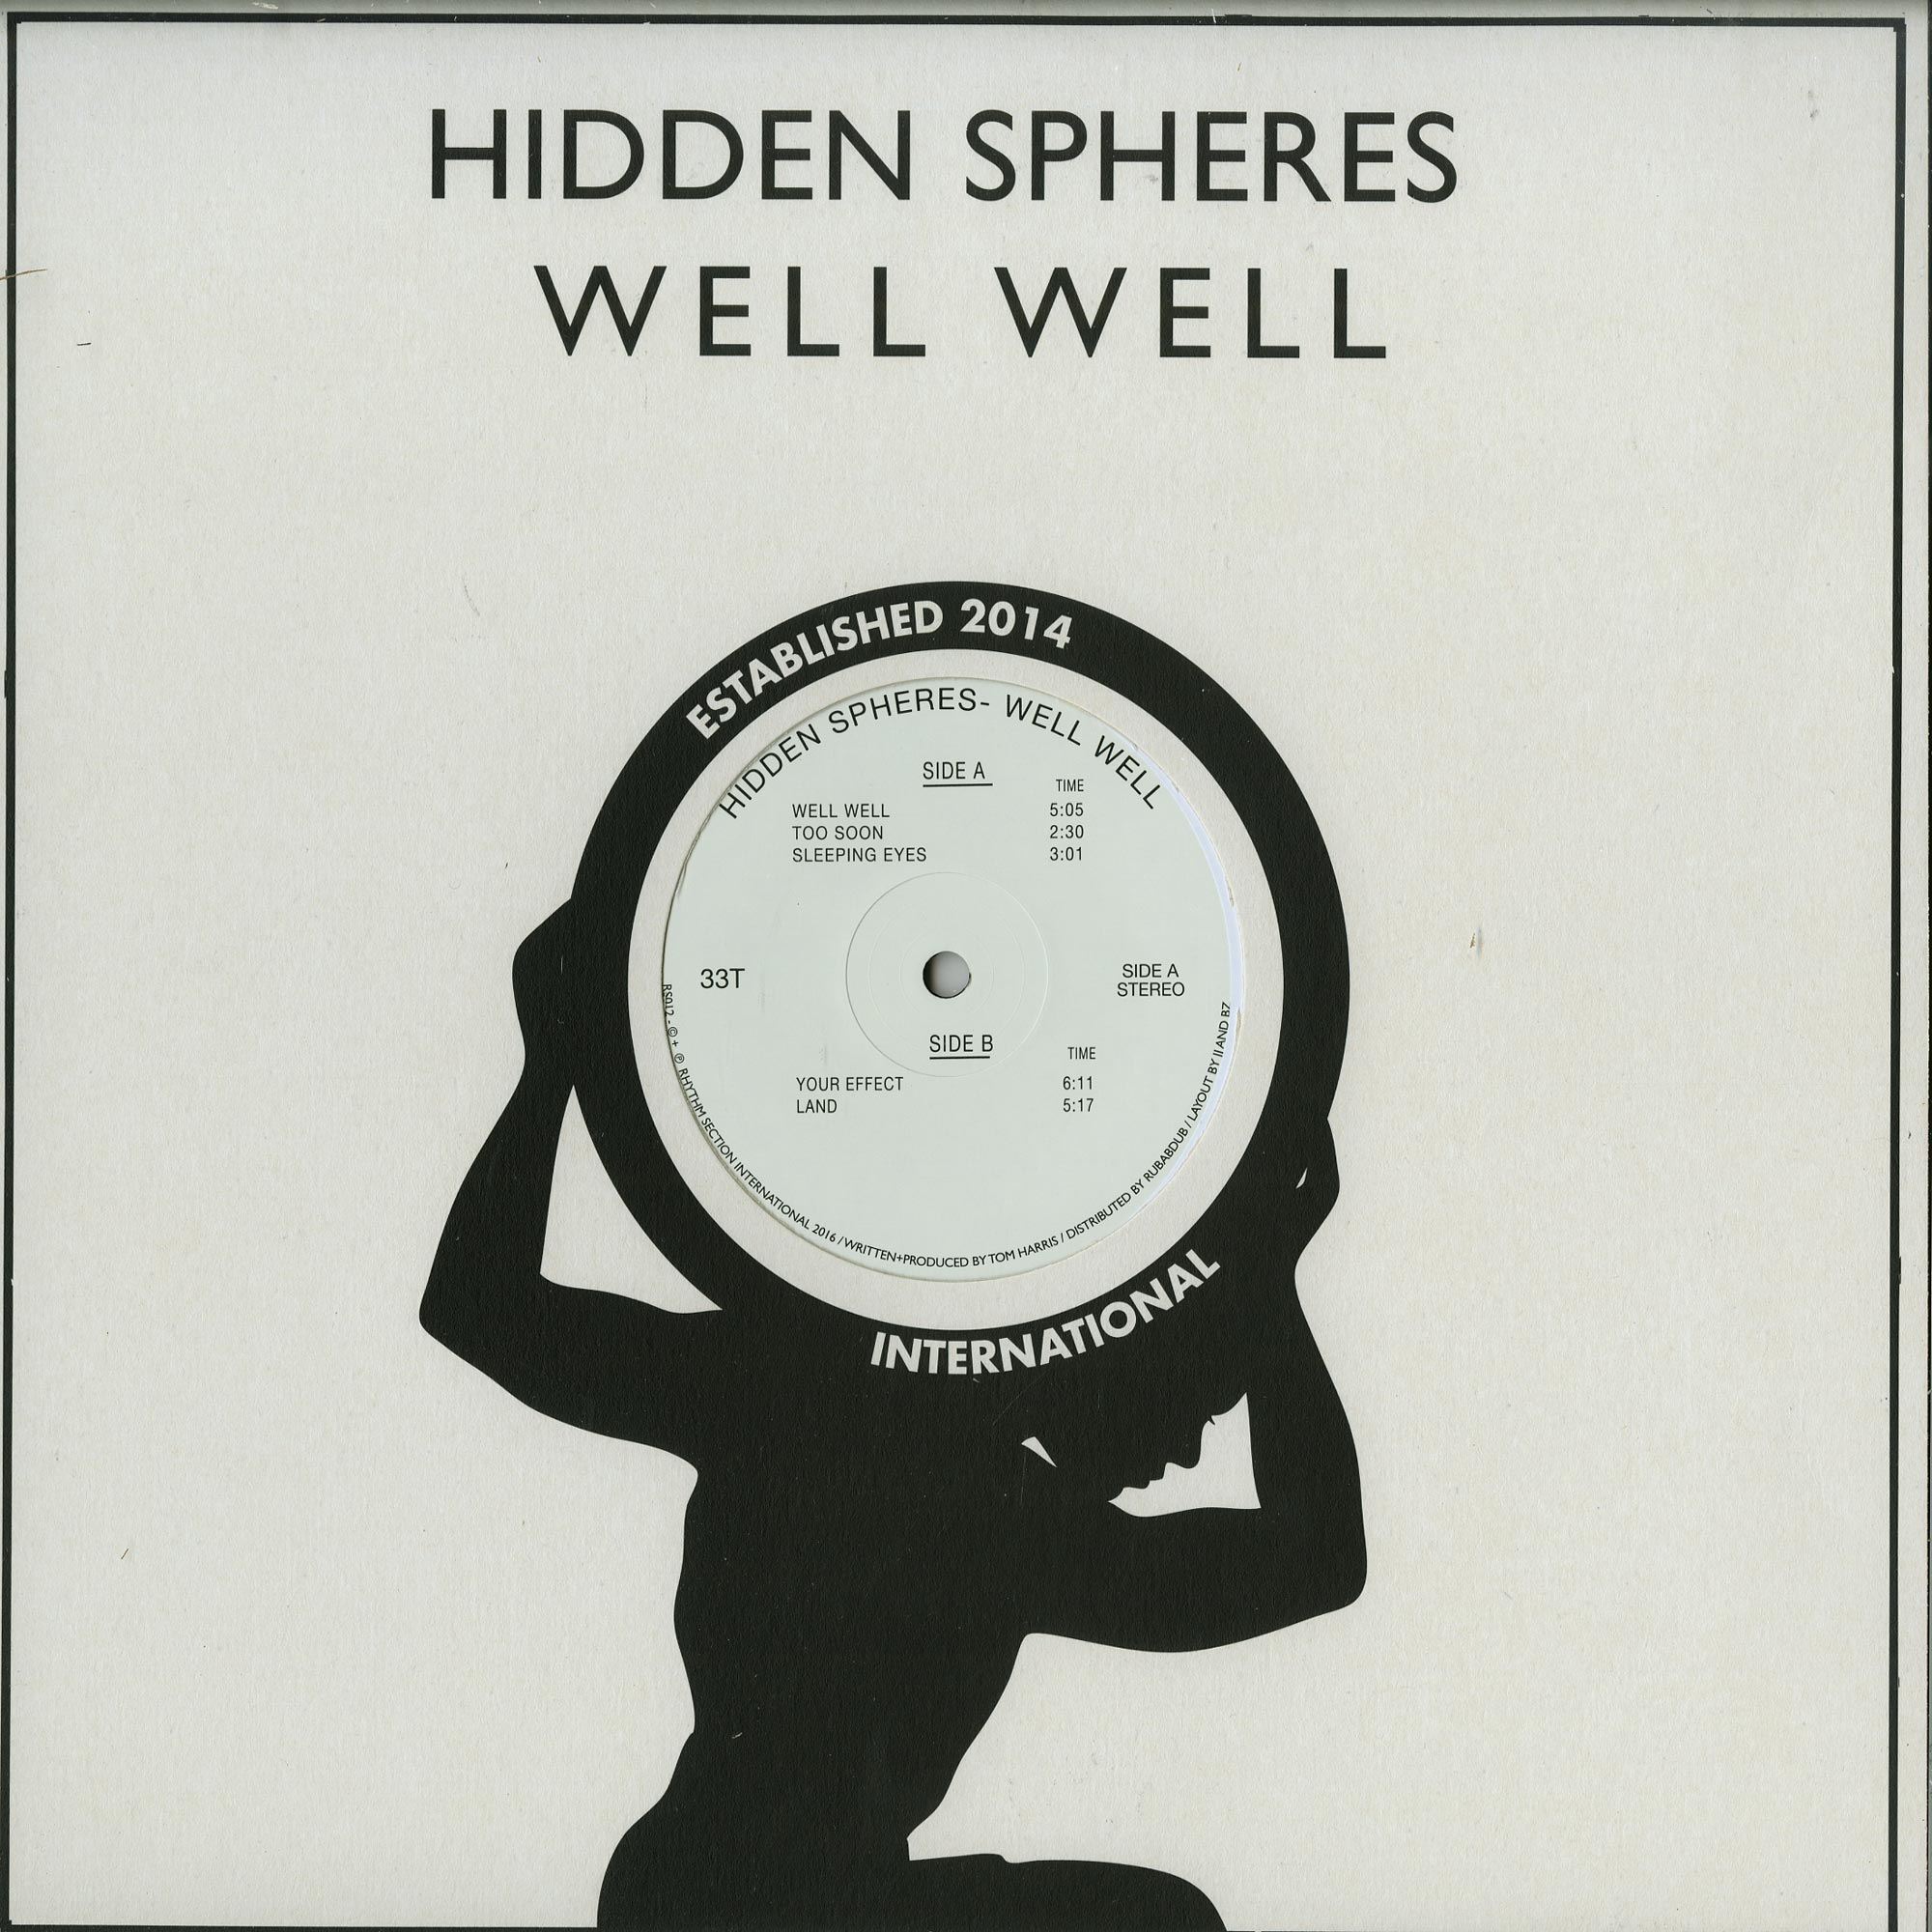 Hidden Spheres - WELL WELL